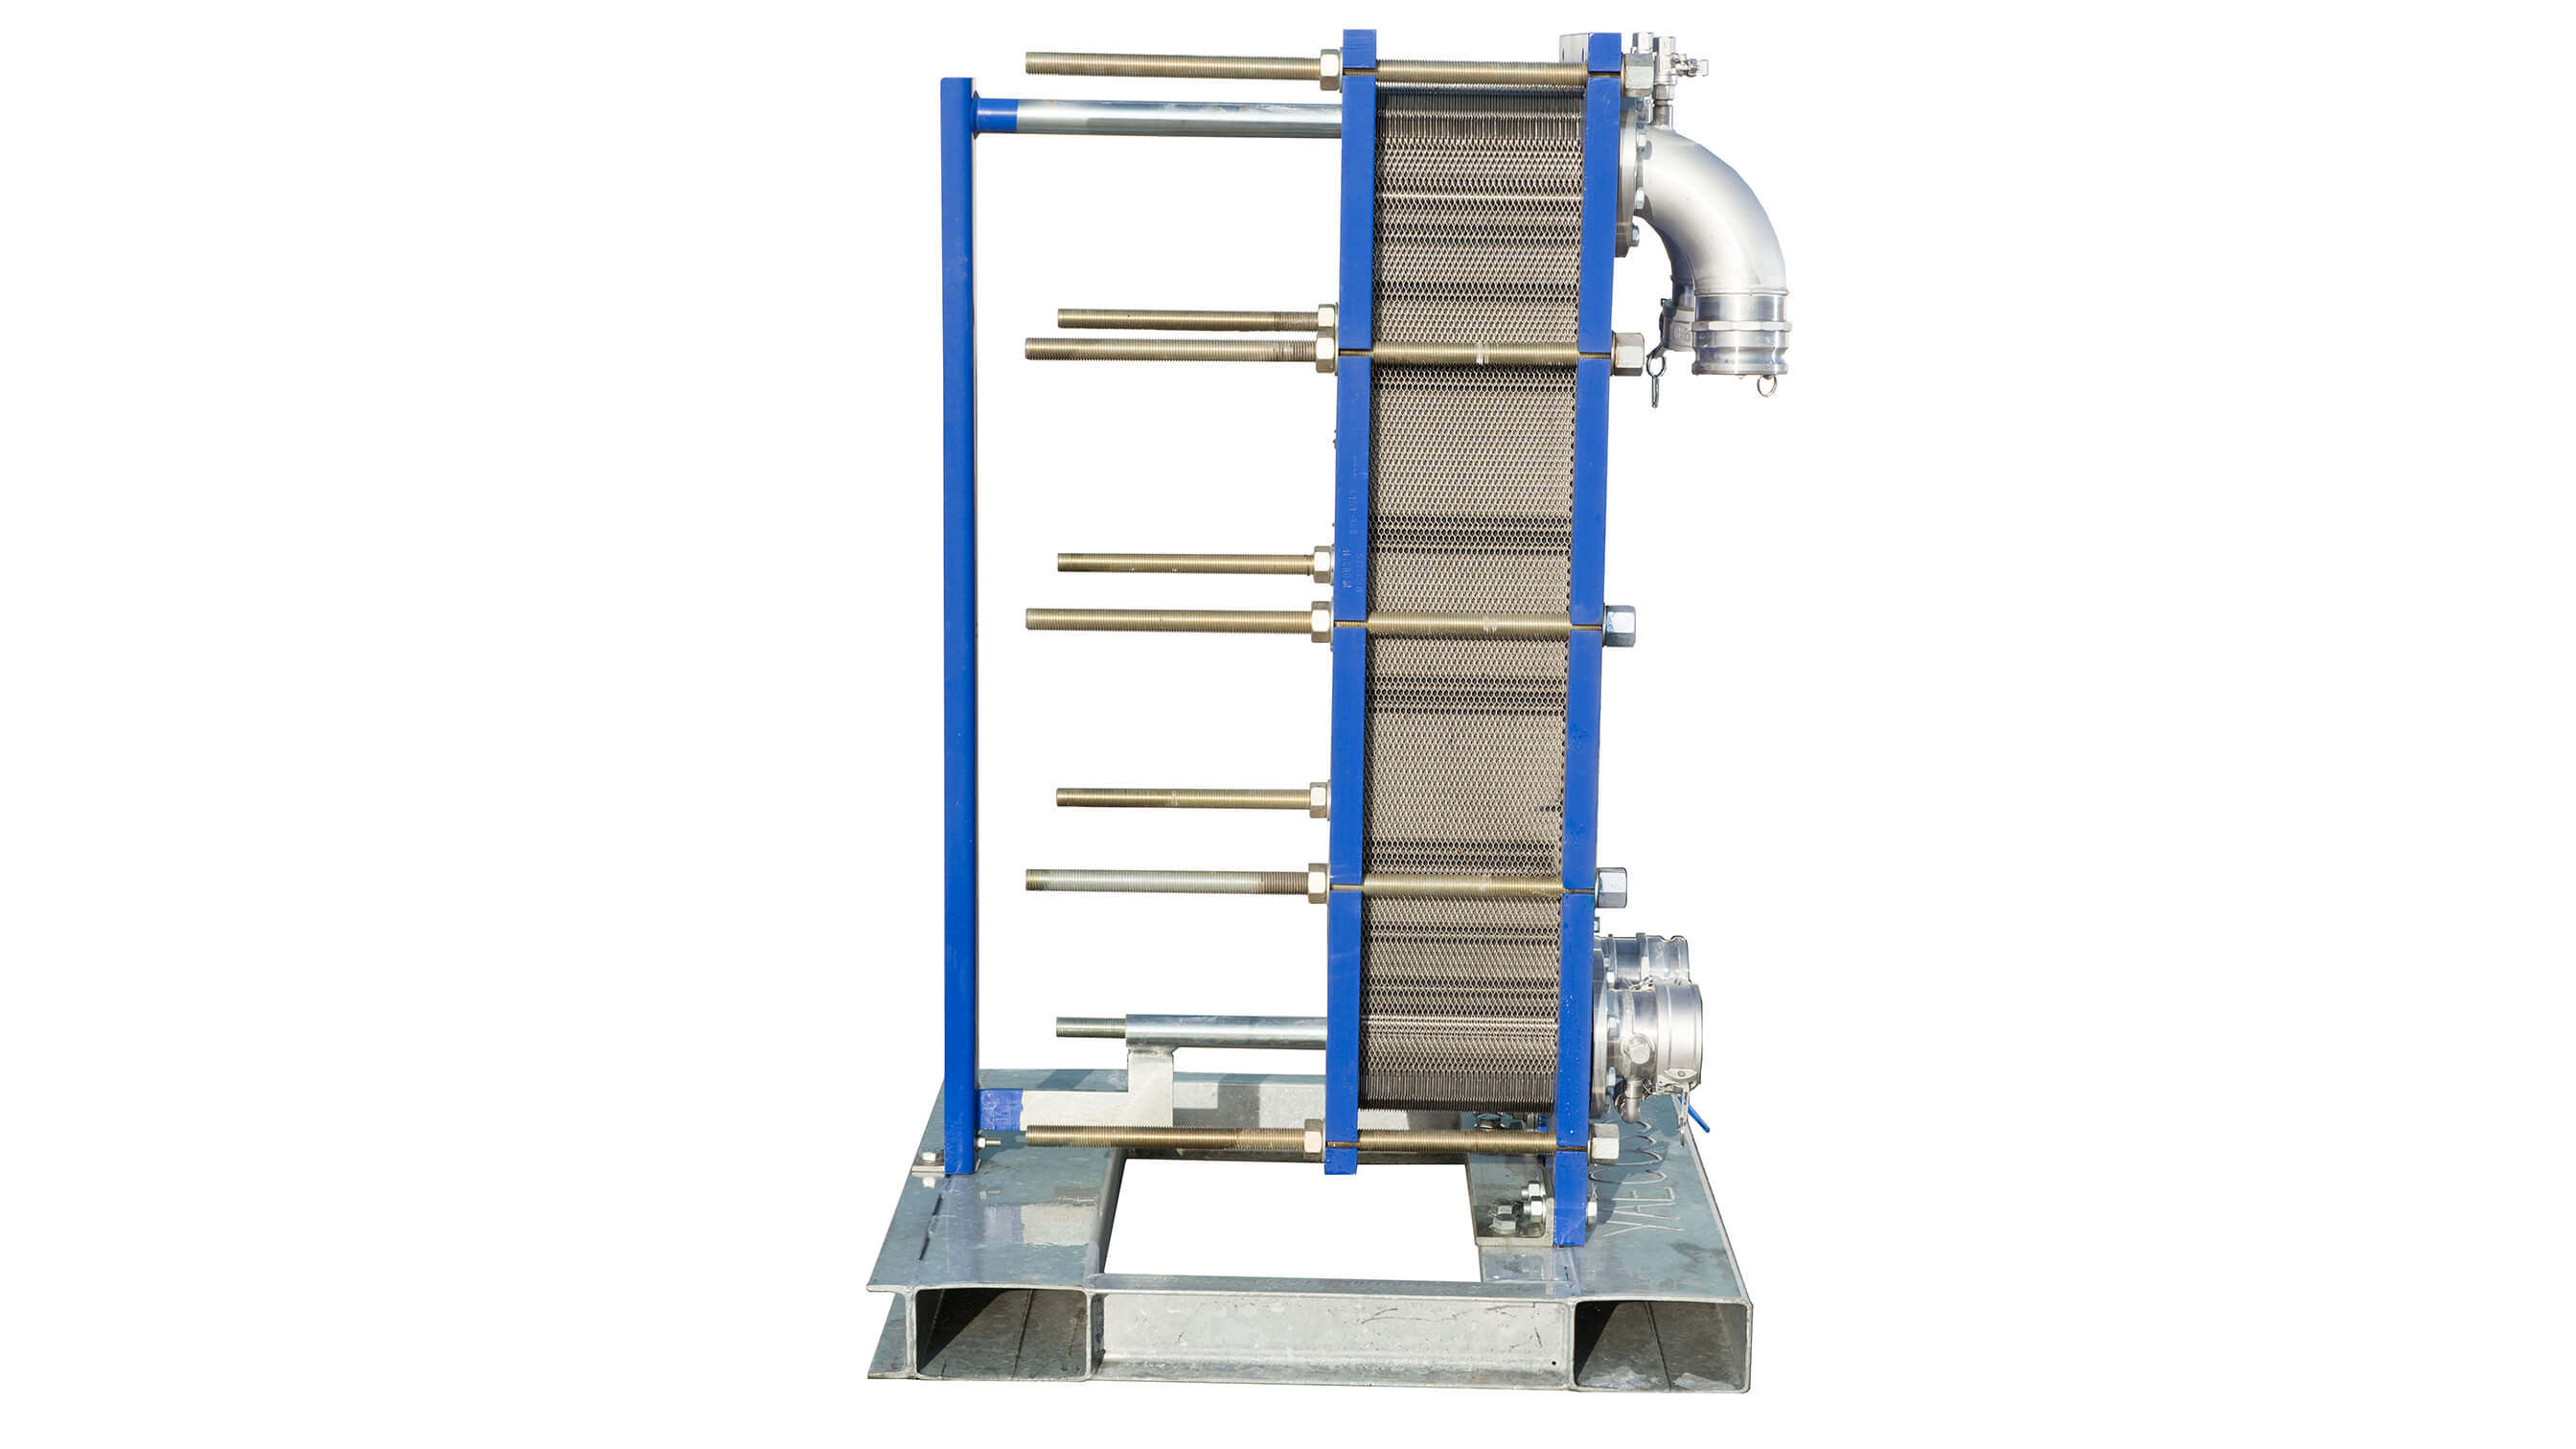 HX500 Heat Exchanger